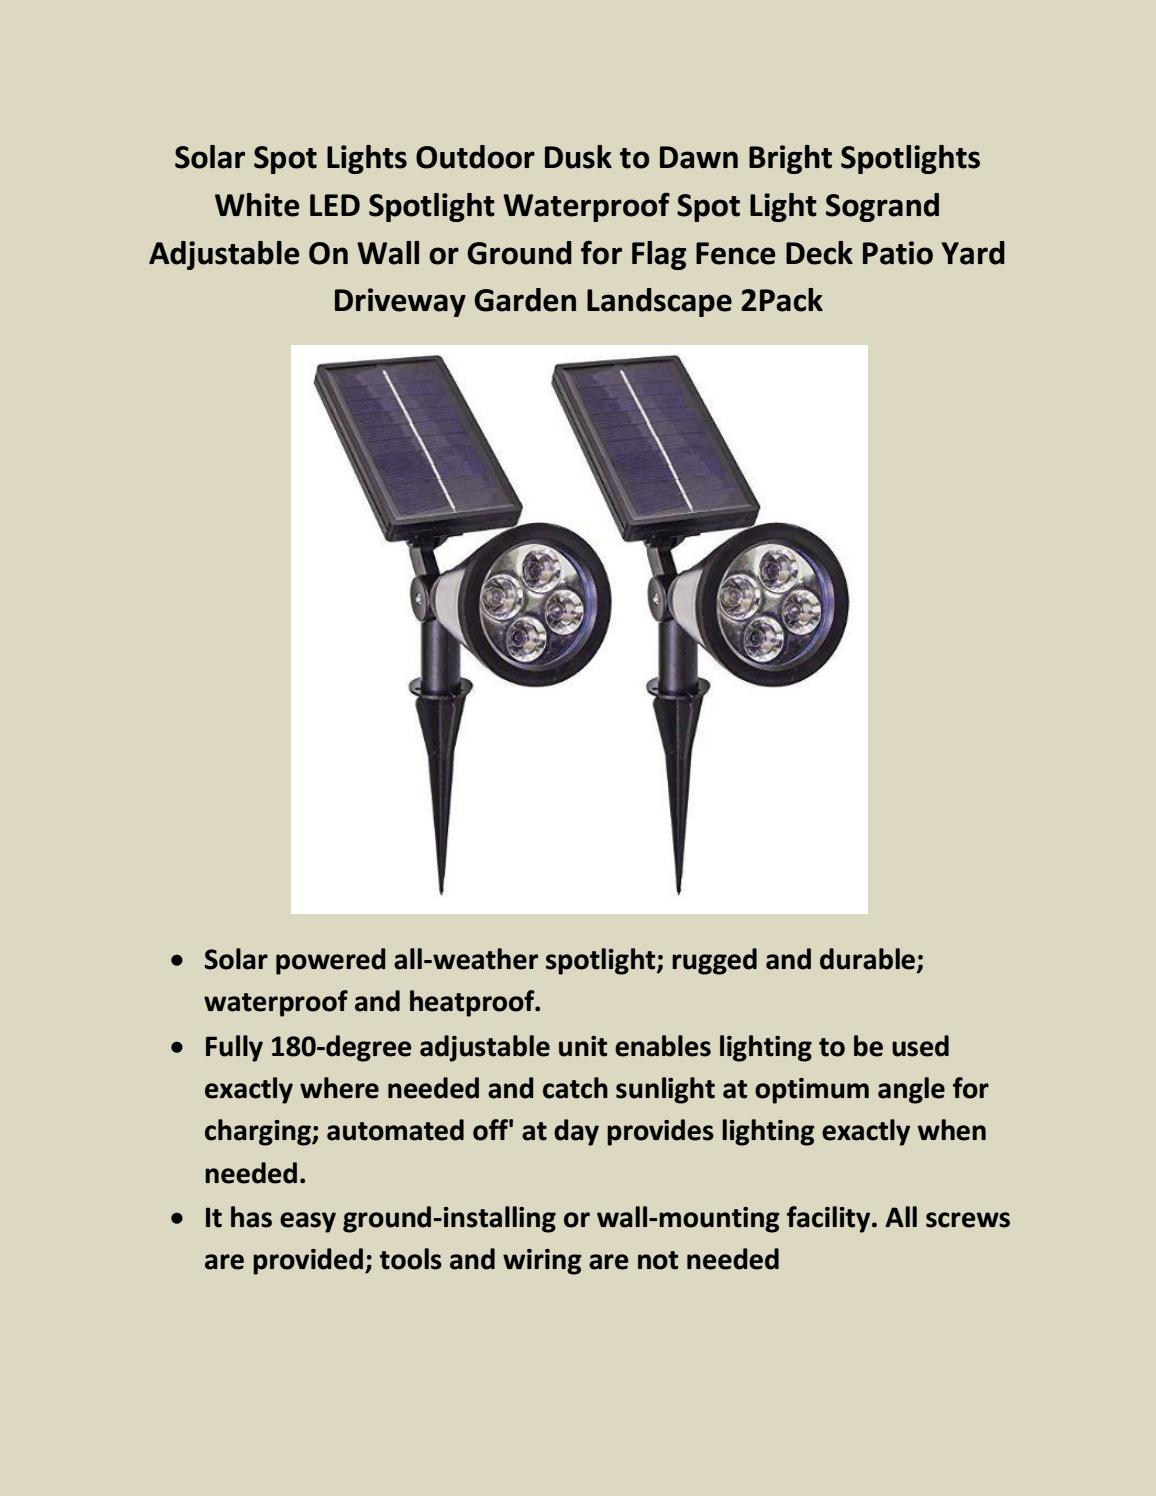 Prime Day Deals 2018 Solar Wall Lights Outdoor Bright Led Waterproof Wiring Outside Landscape By Federy Shory Issuu